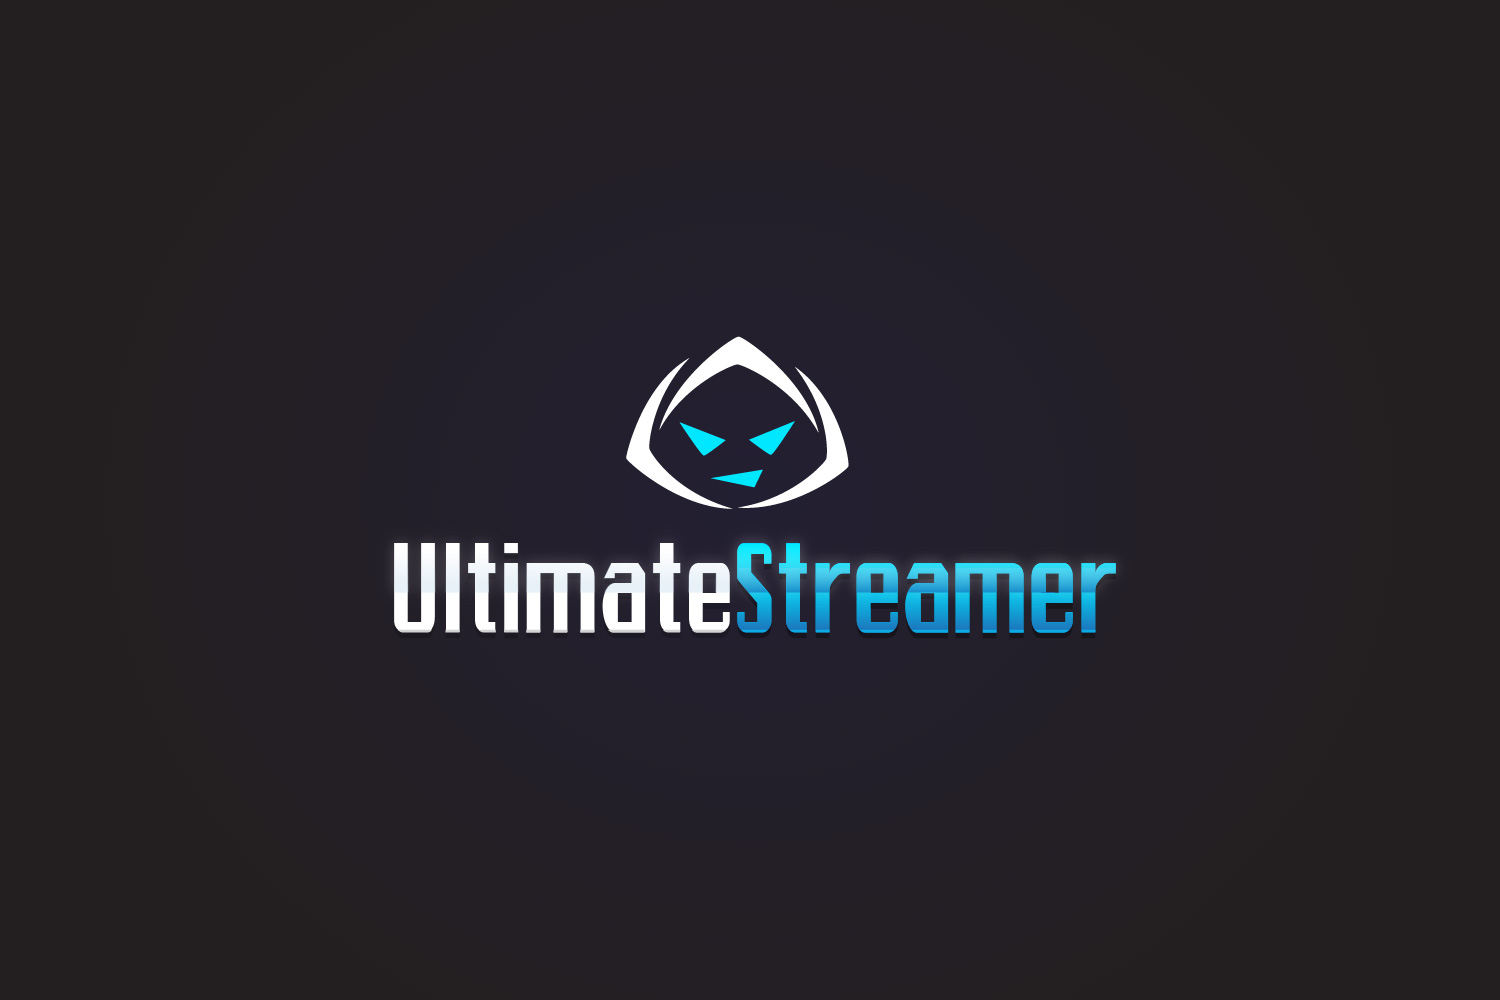 Ultimate Streamer Logo Identity